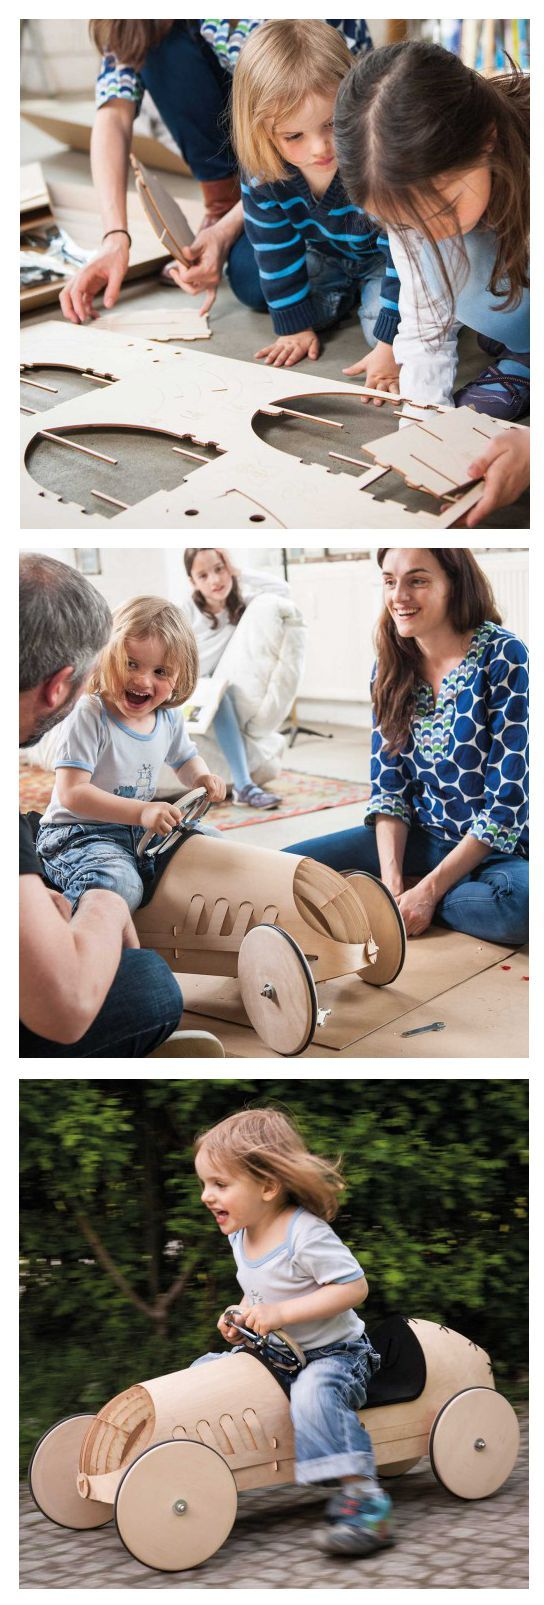 Flink – Wooden push car for self-assembly by phim